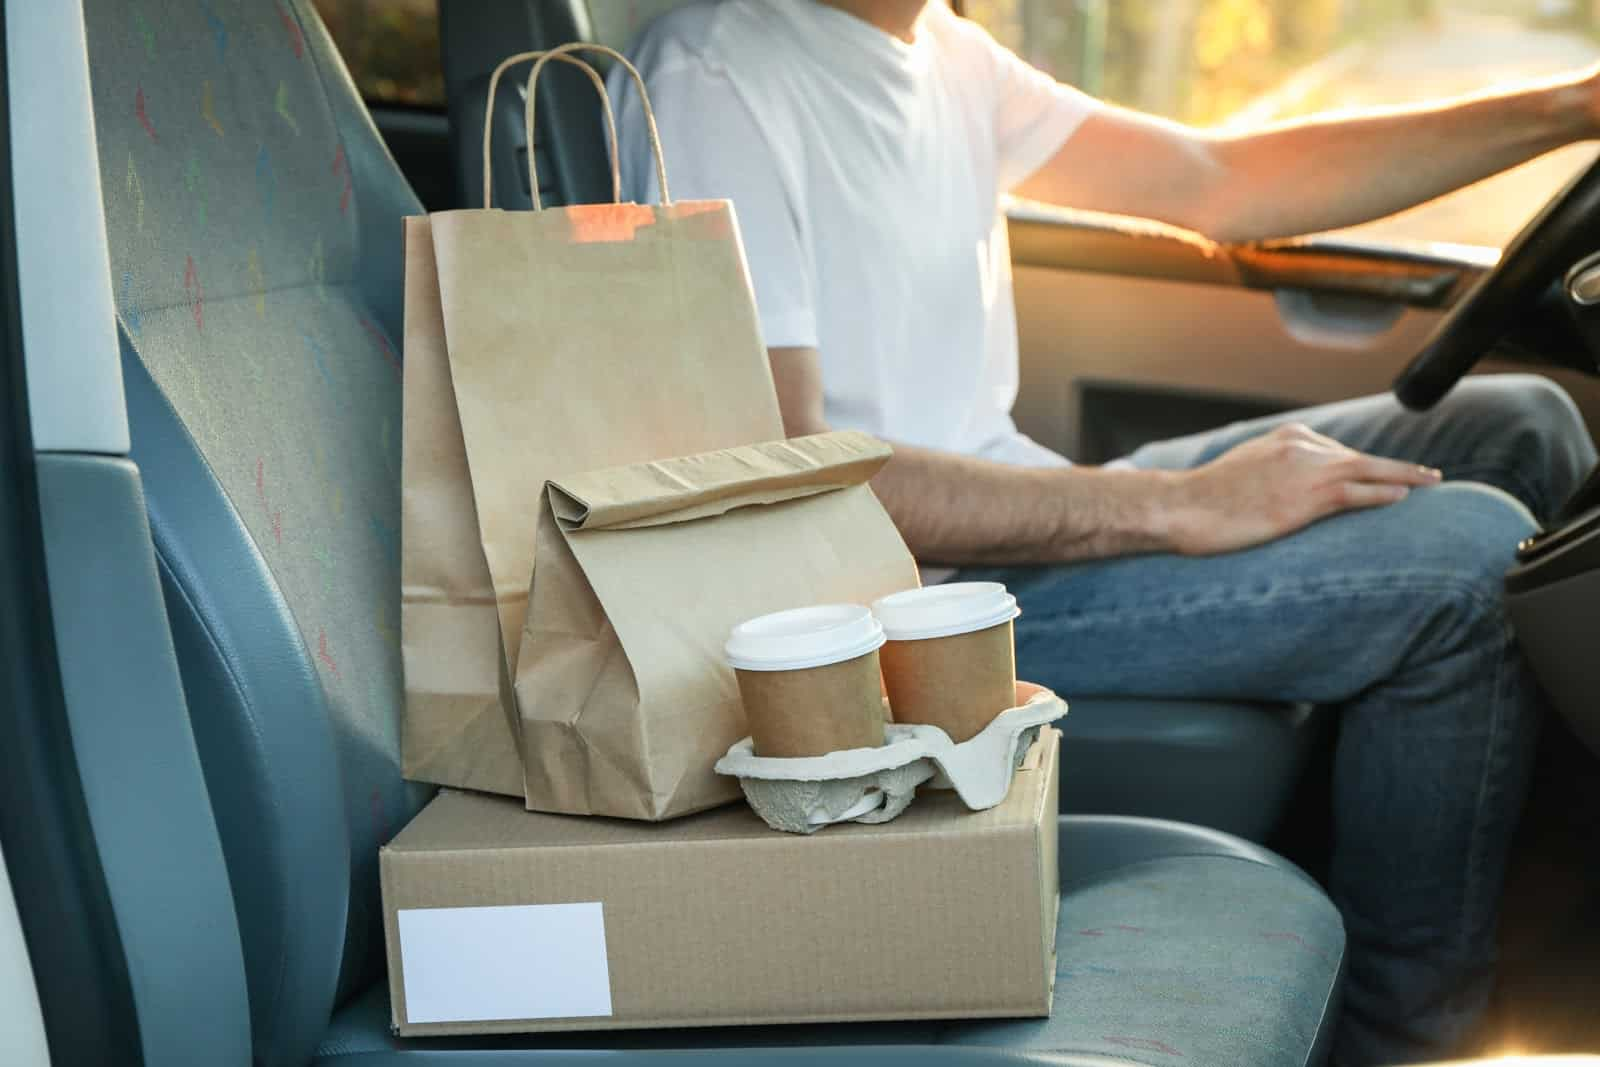 Postmates requirements: A driver with a food delivery on his passenger seat